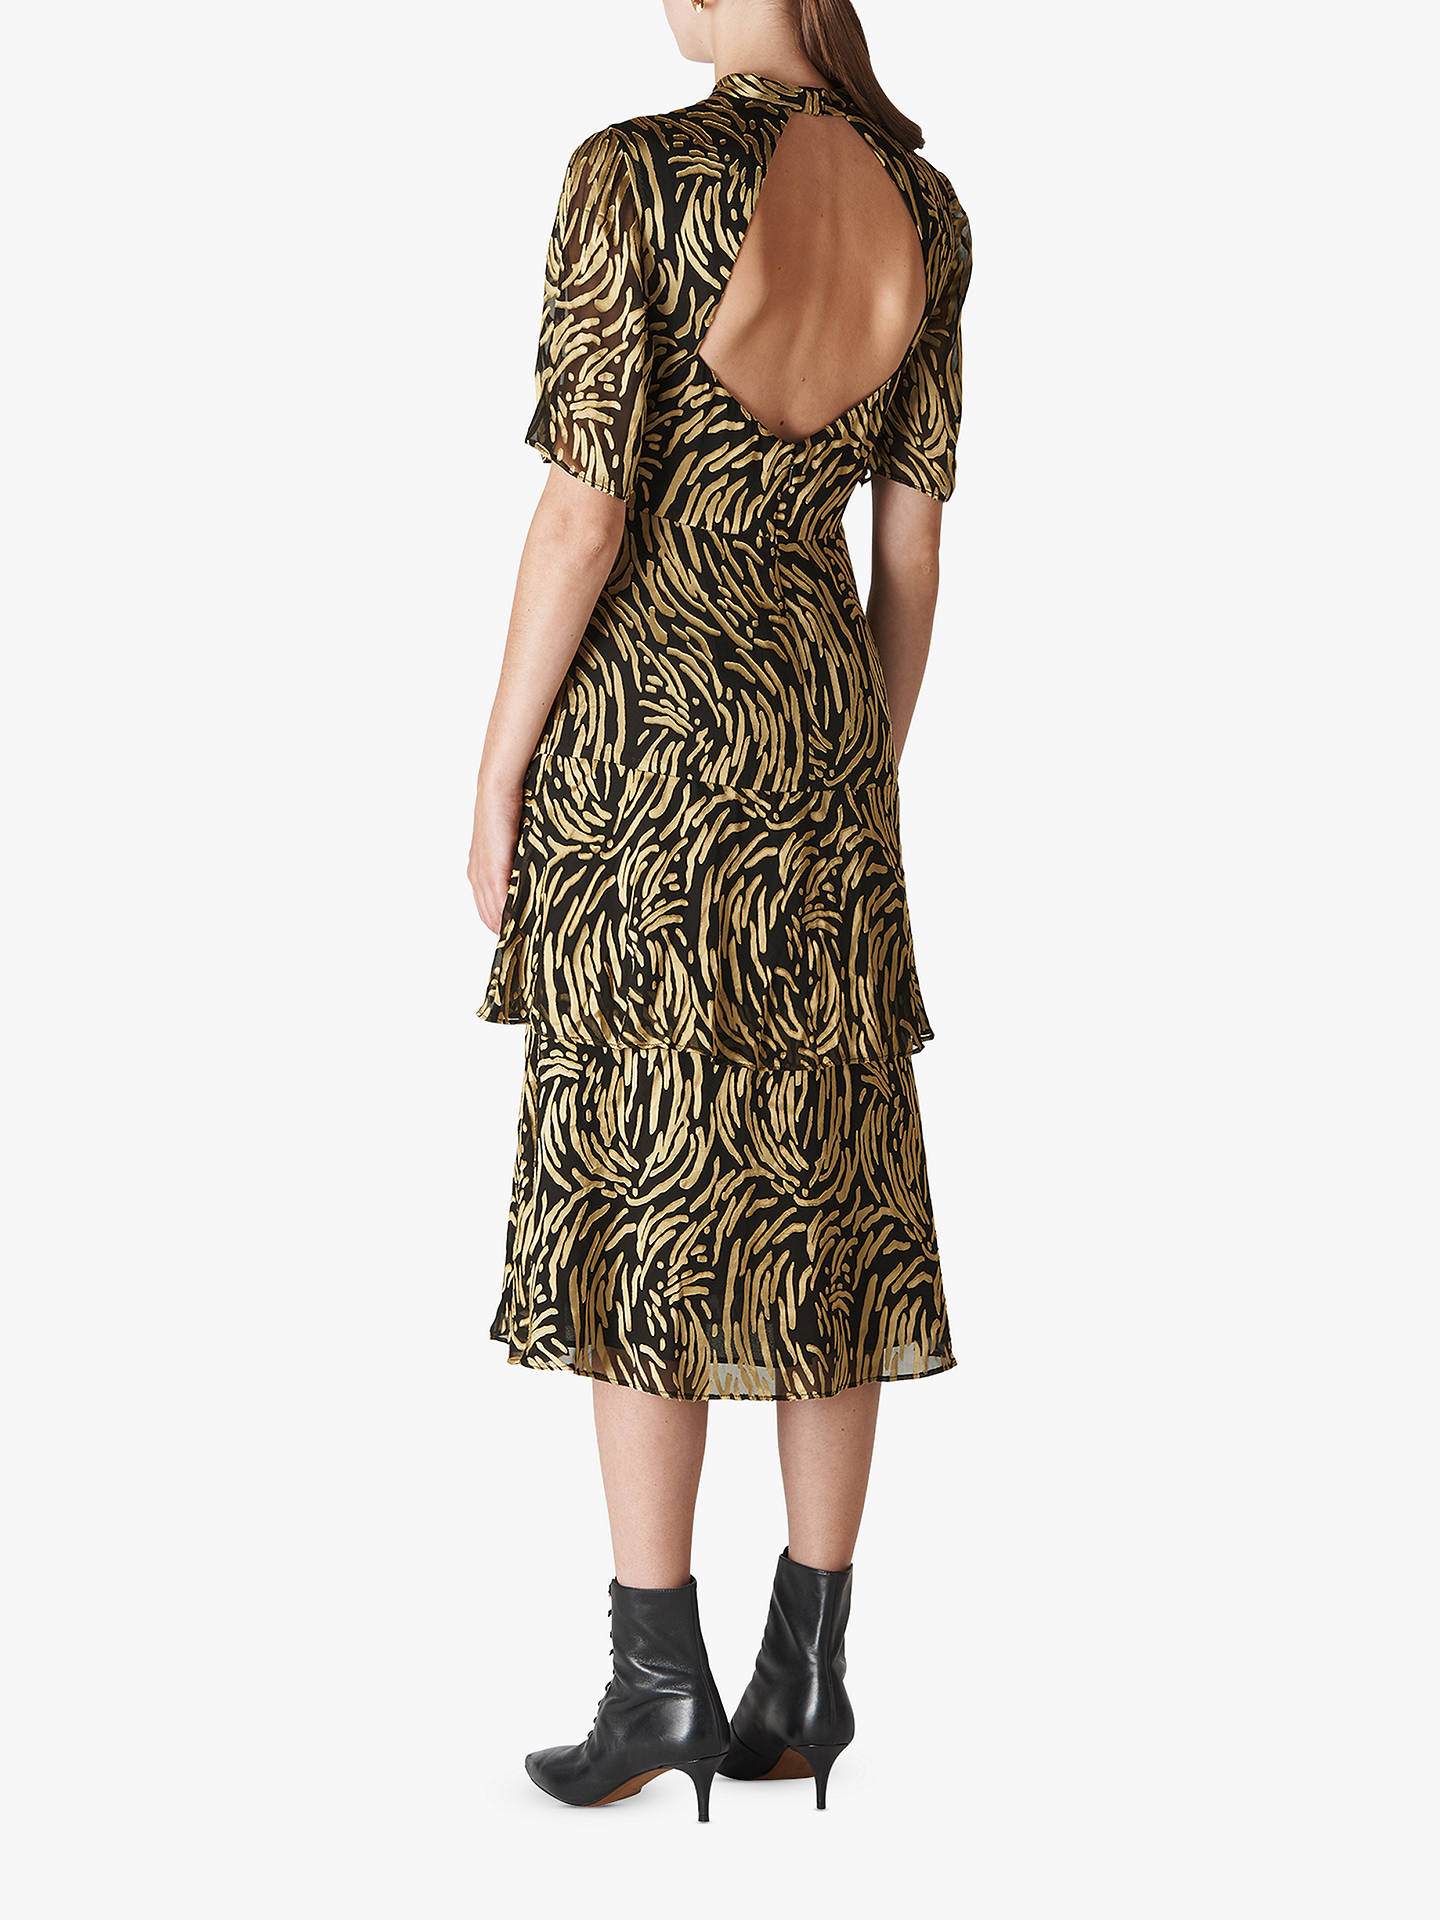 84a757a8a794 ... Buy Whistles Ivanna Reed Devore Frill Dress, Gold/Multi, 14 Online at  johnlewis ...